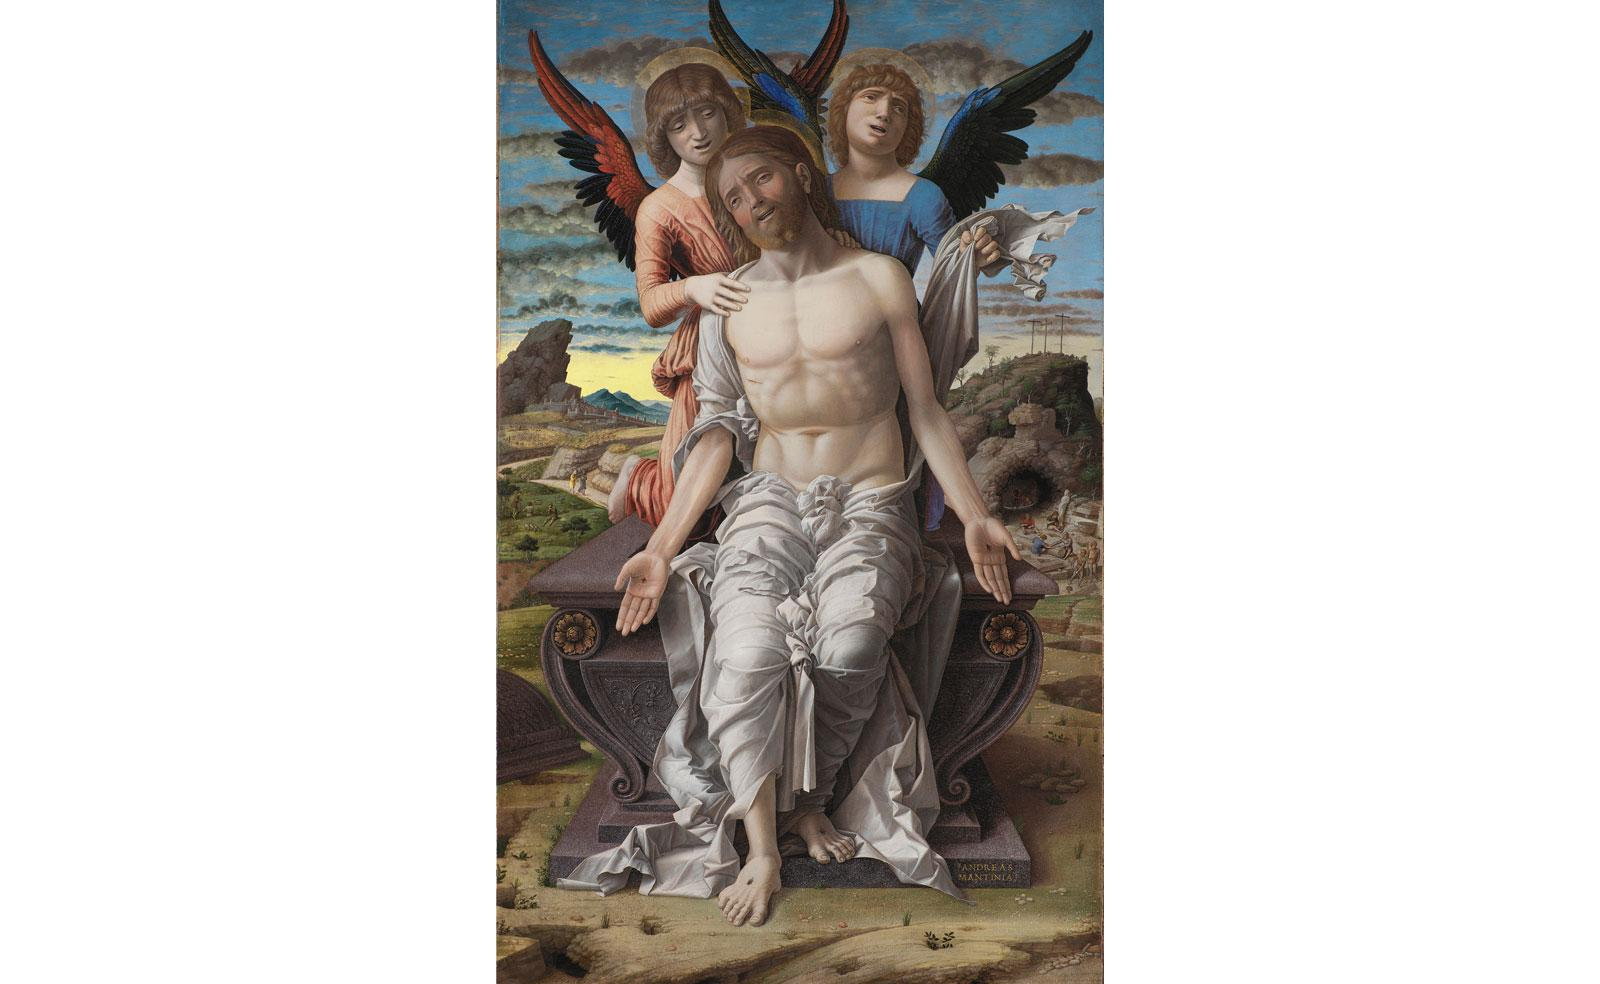 The Man of Sorrows by Andrea Mantegna.